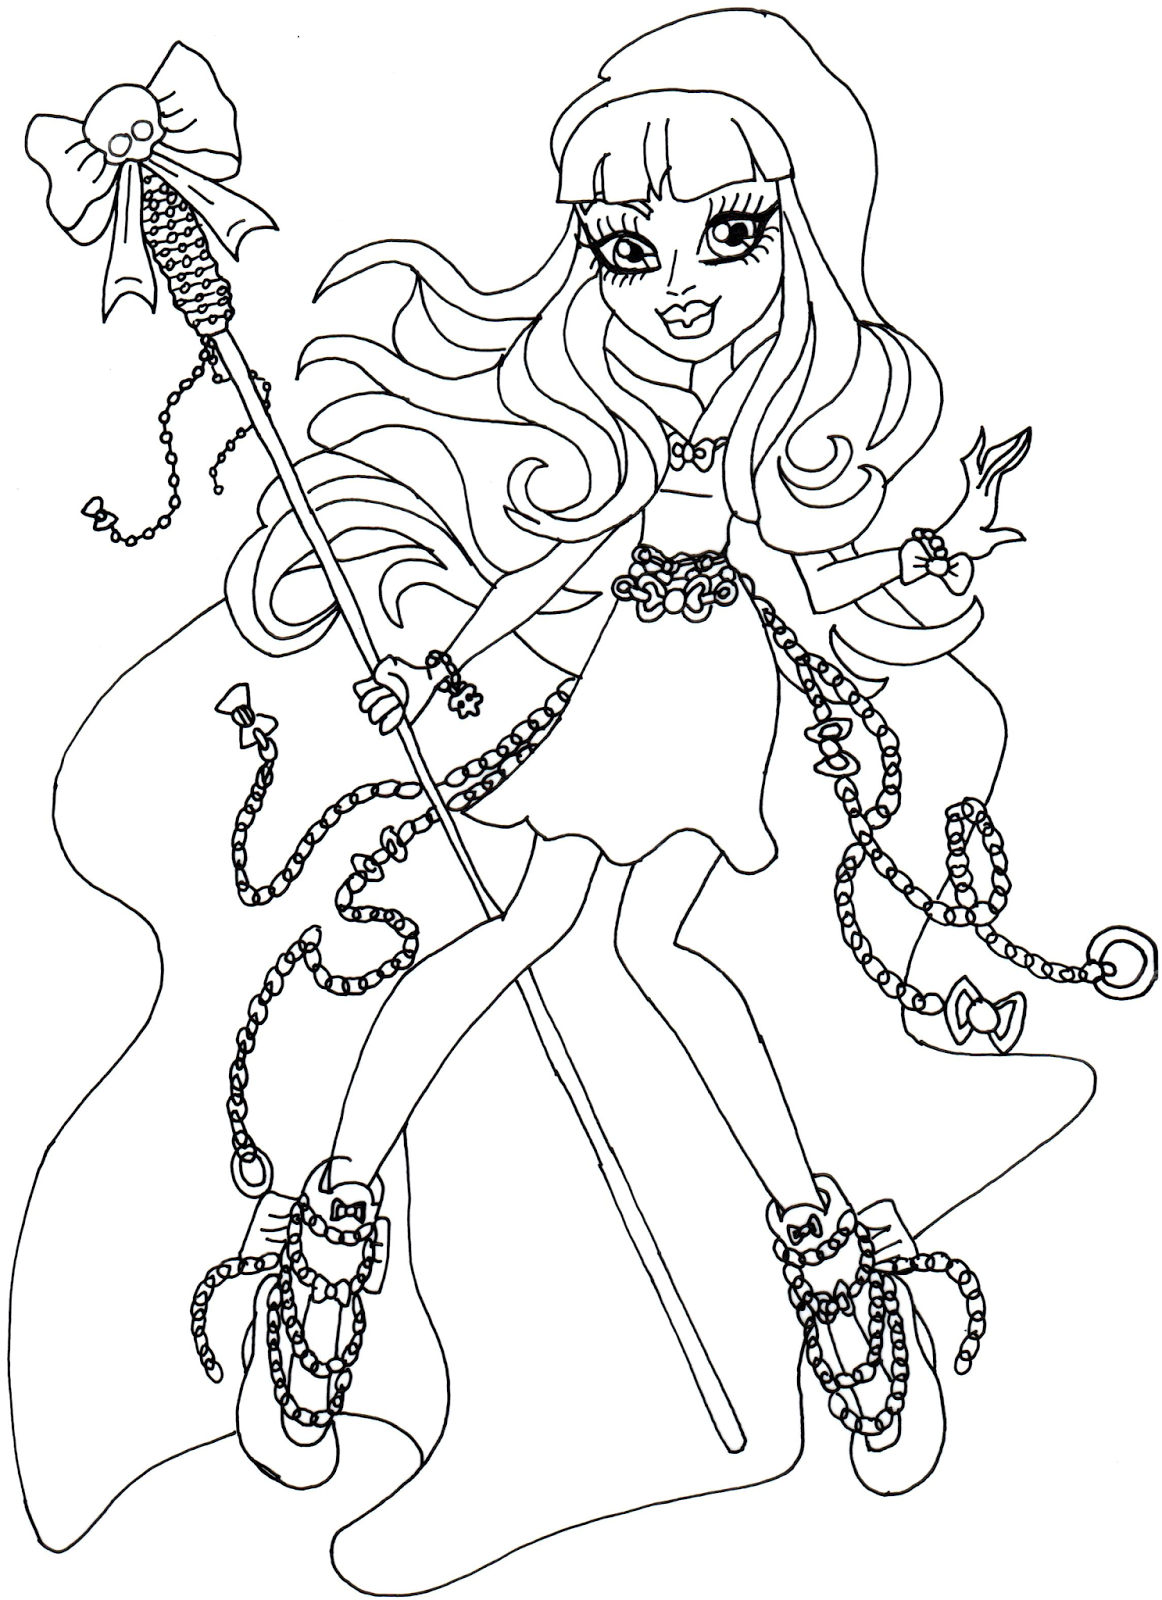 RiverStyxxMonsterHighColoringPagepng 11621600 Monster